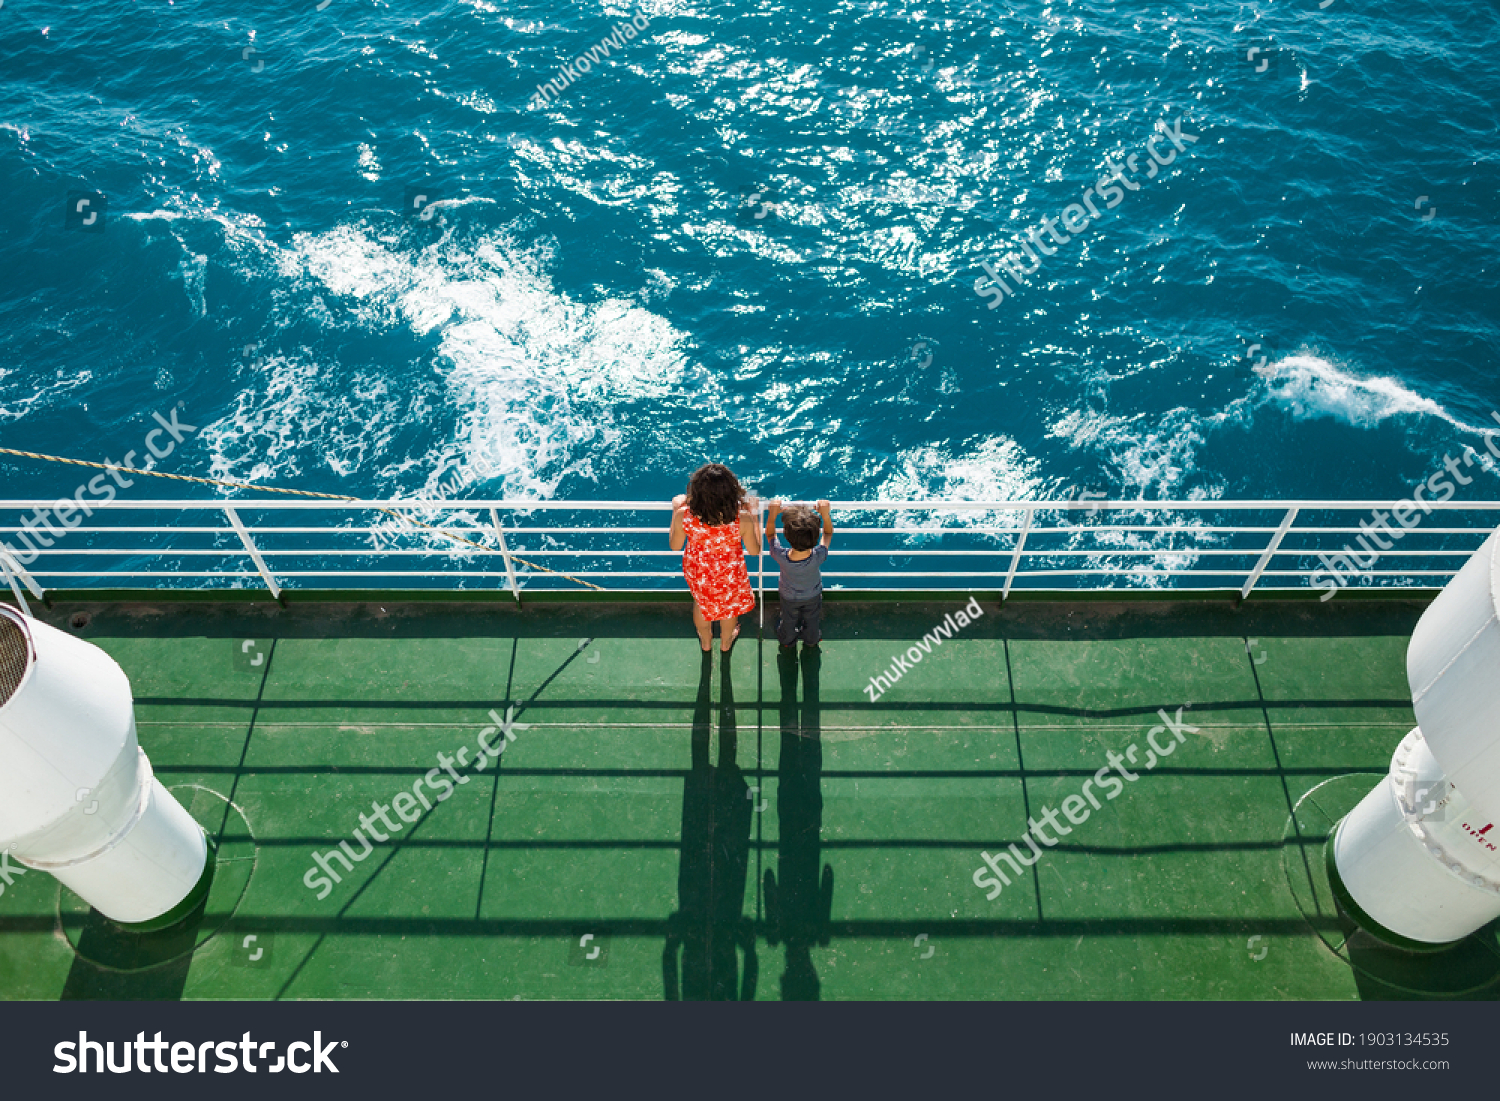 The family is sailing on a cruise ship, a mother with  son are standing at the fence on the ship and looking at the sea, traveling by ferry, a boy with mom are sailing on a ship. #1903134535